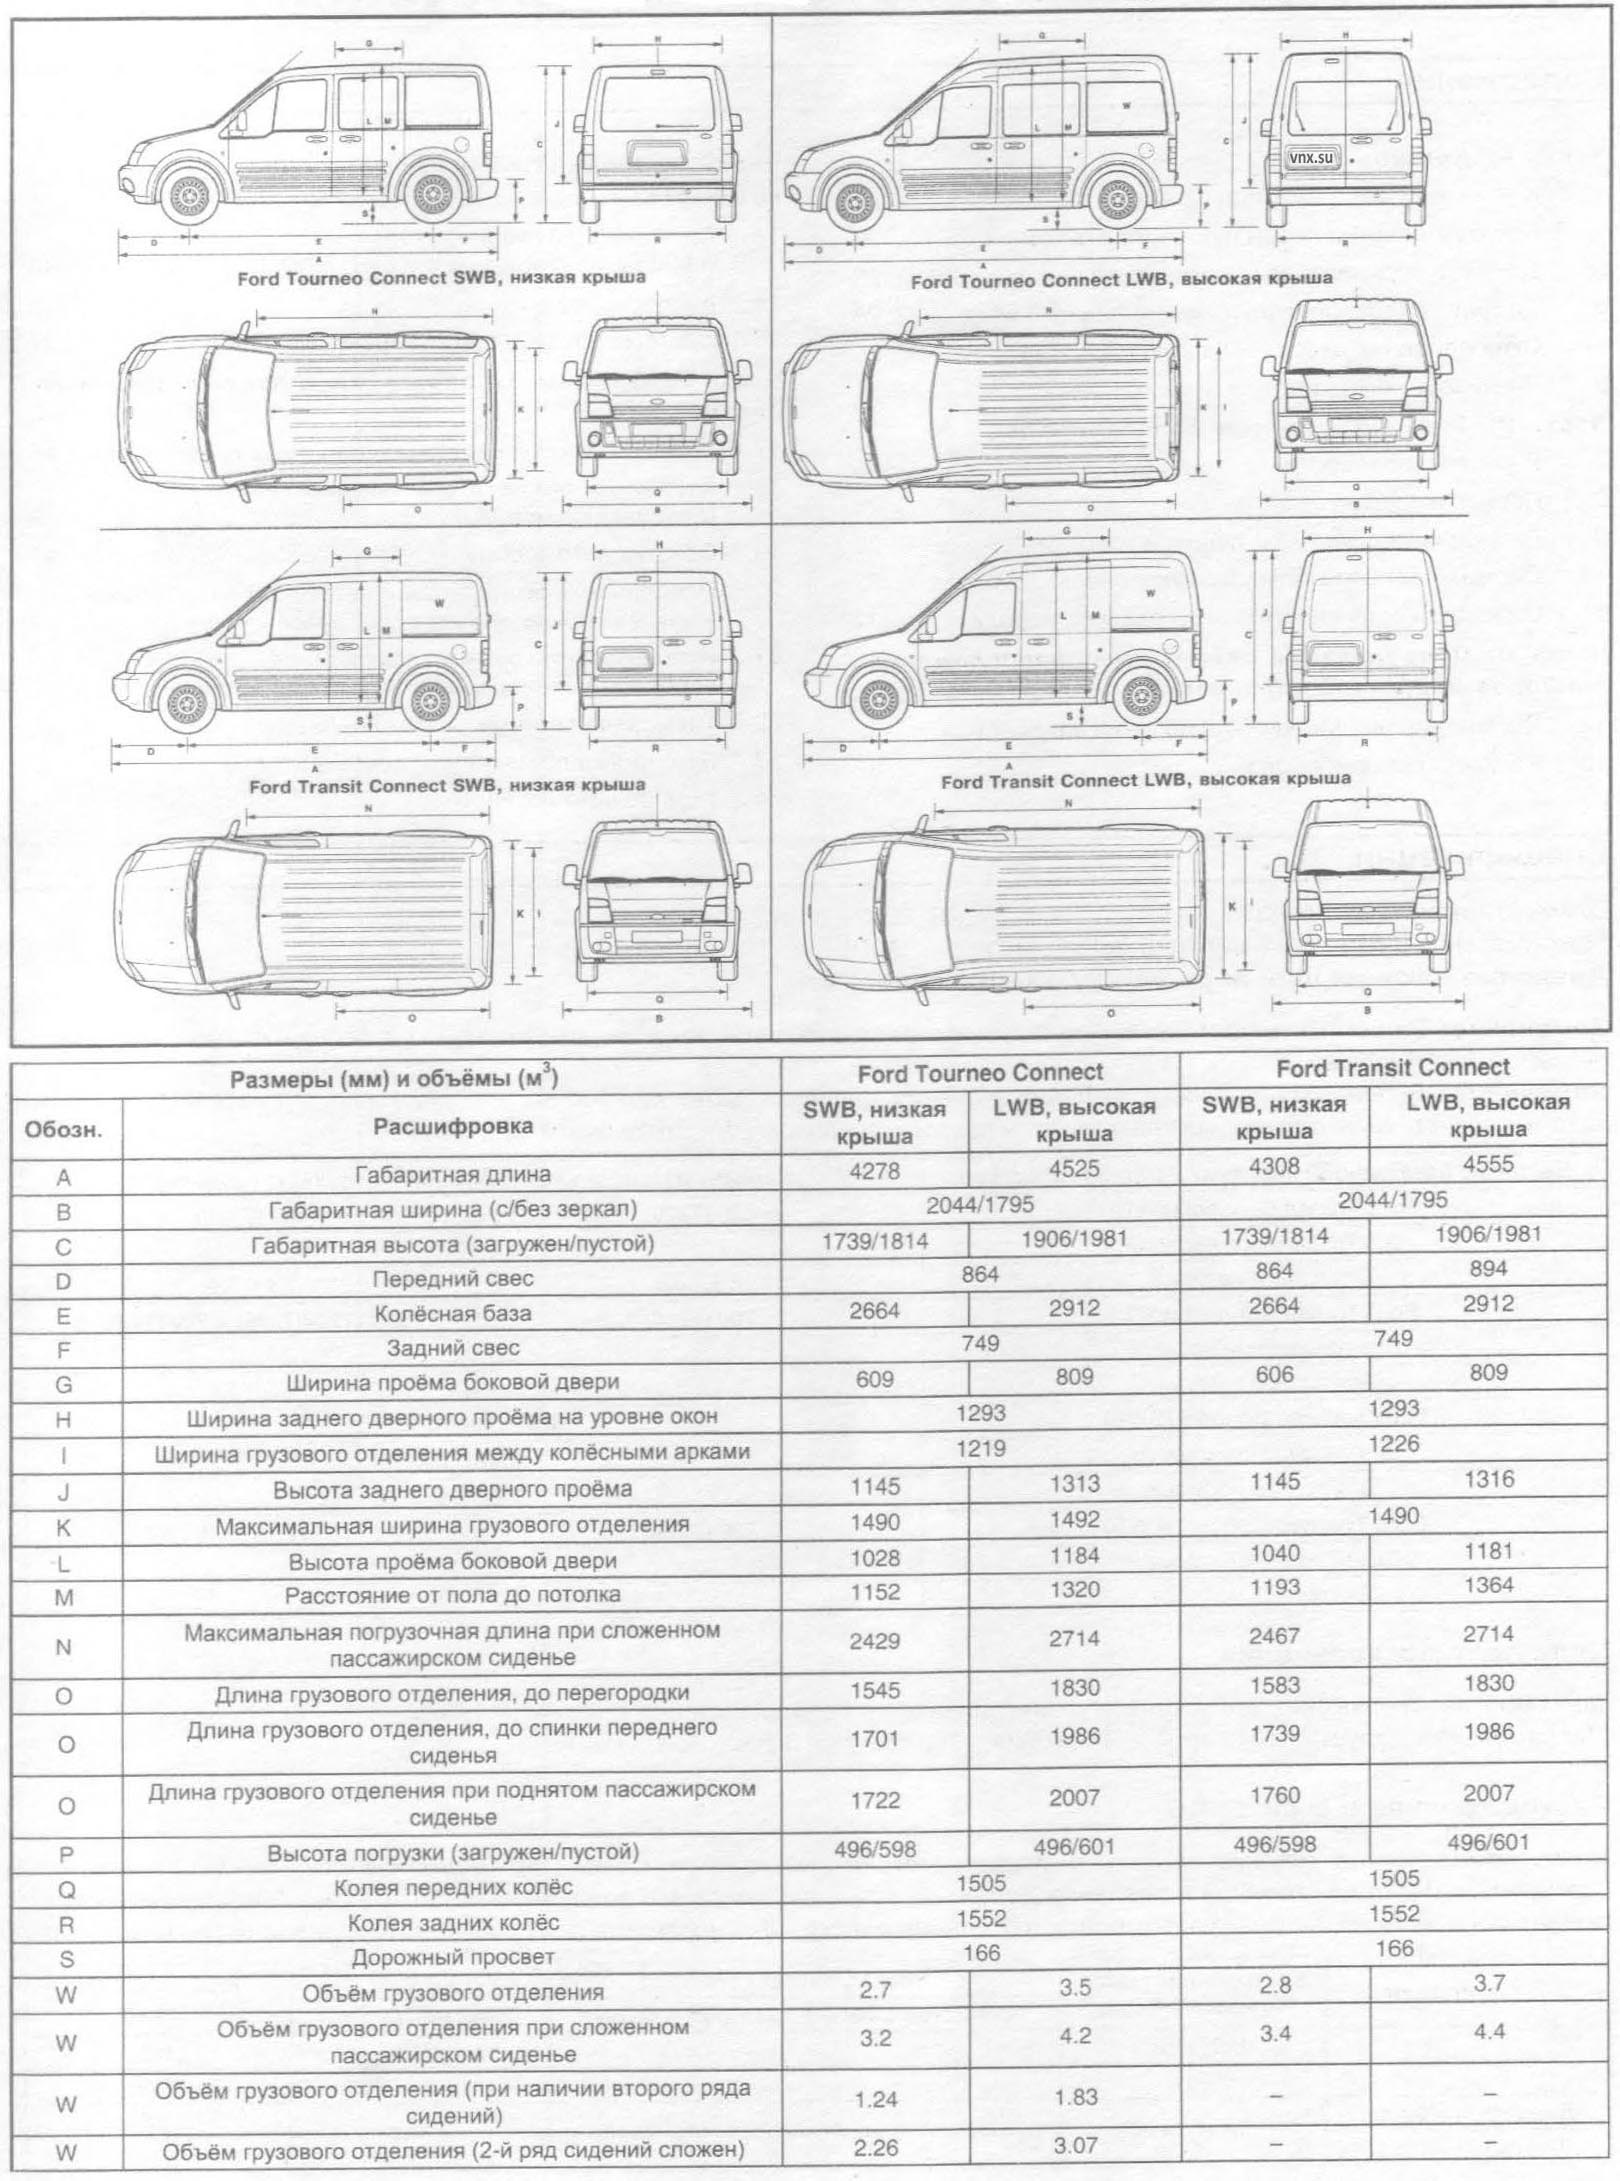 farmall h 12 volt conversion wiring diagram obd0 to obd1 distributor 2010 ford transit connect fuse box library engine free image for 2002 e350 van